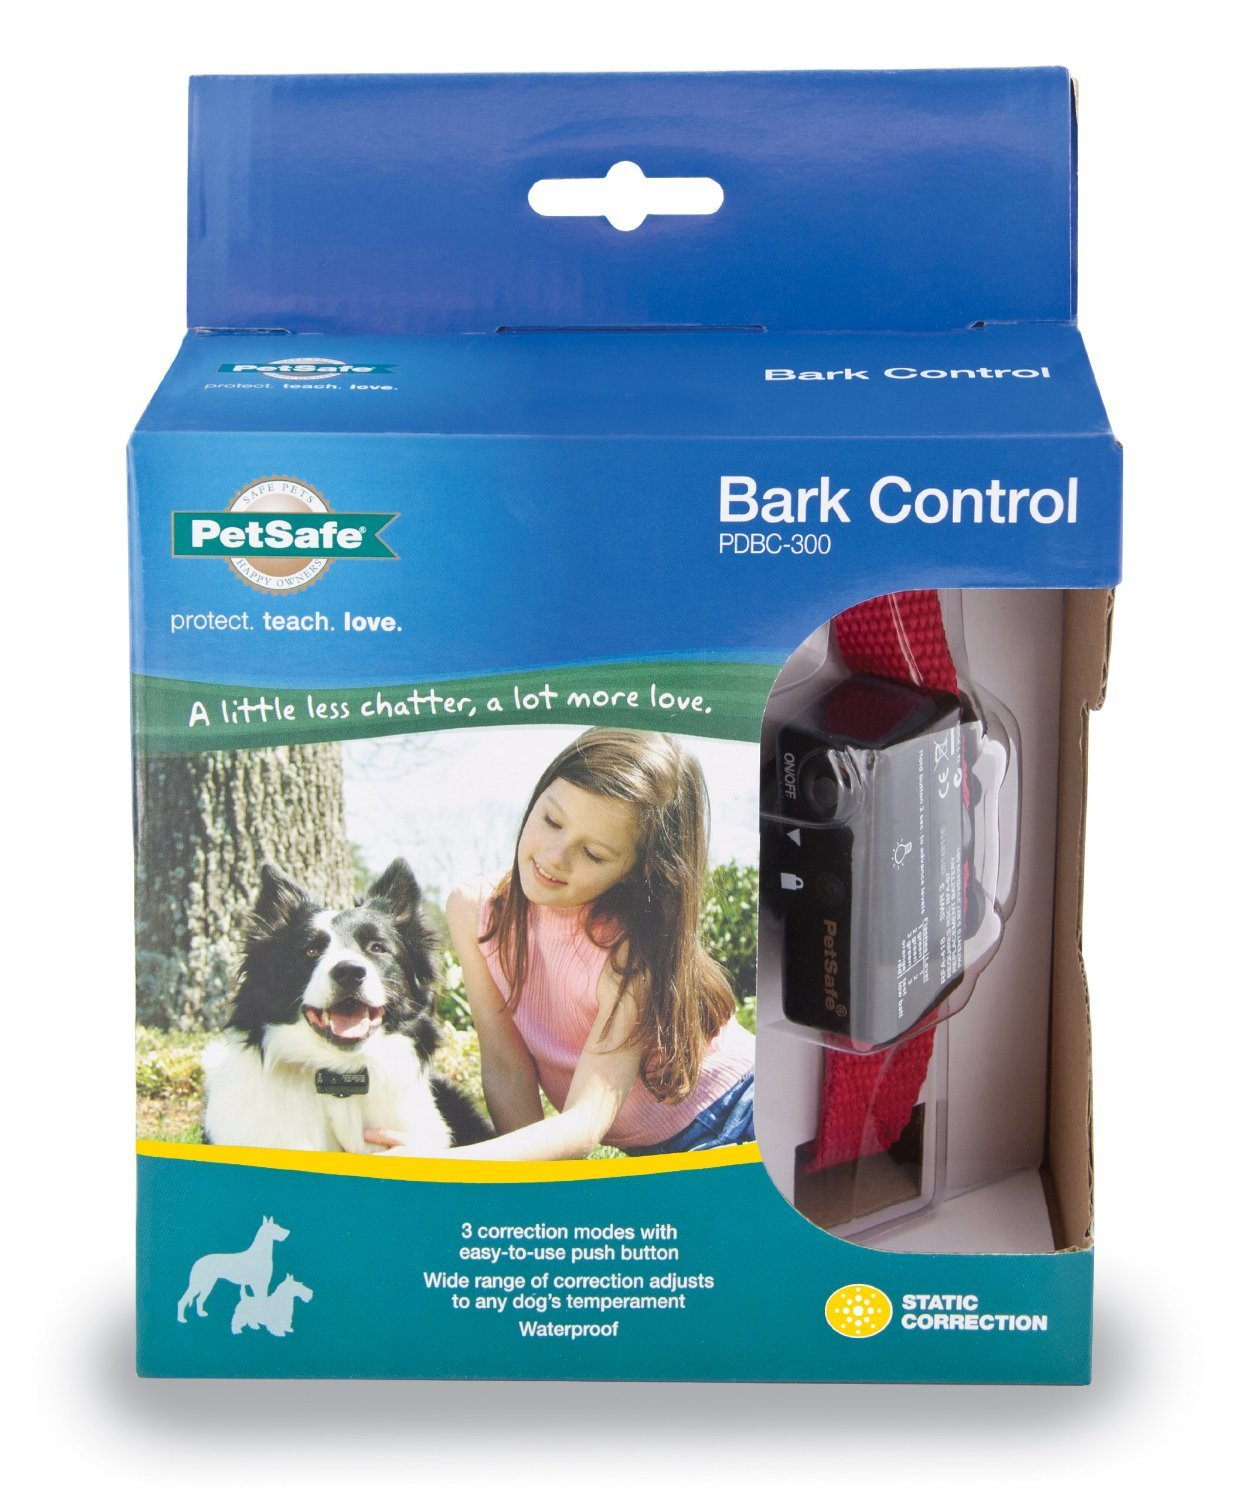 PetSafe Deluxe Bark Control Collar (PDBC-300) for Dogs 8 lb. and Up, Waterproof, 3 Modes of Static Correction